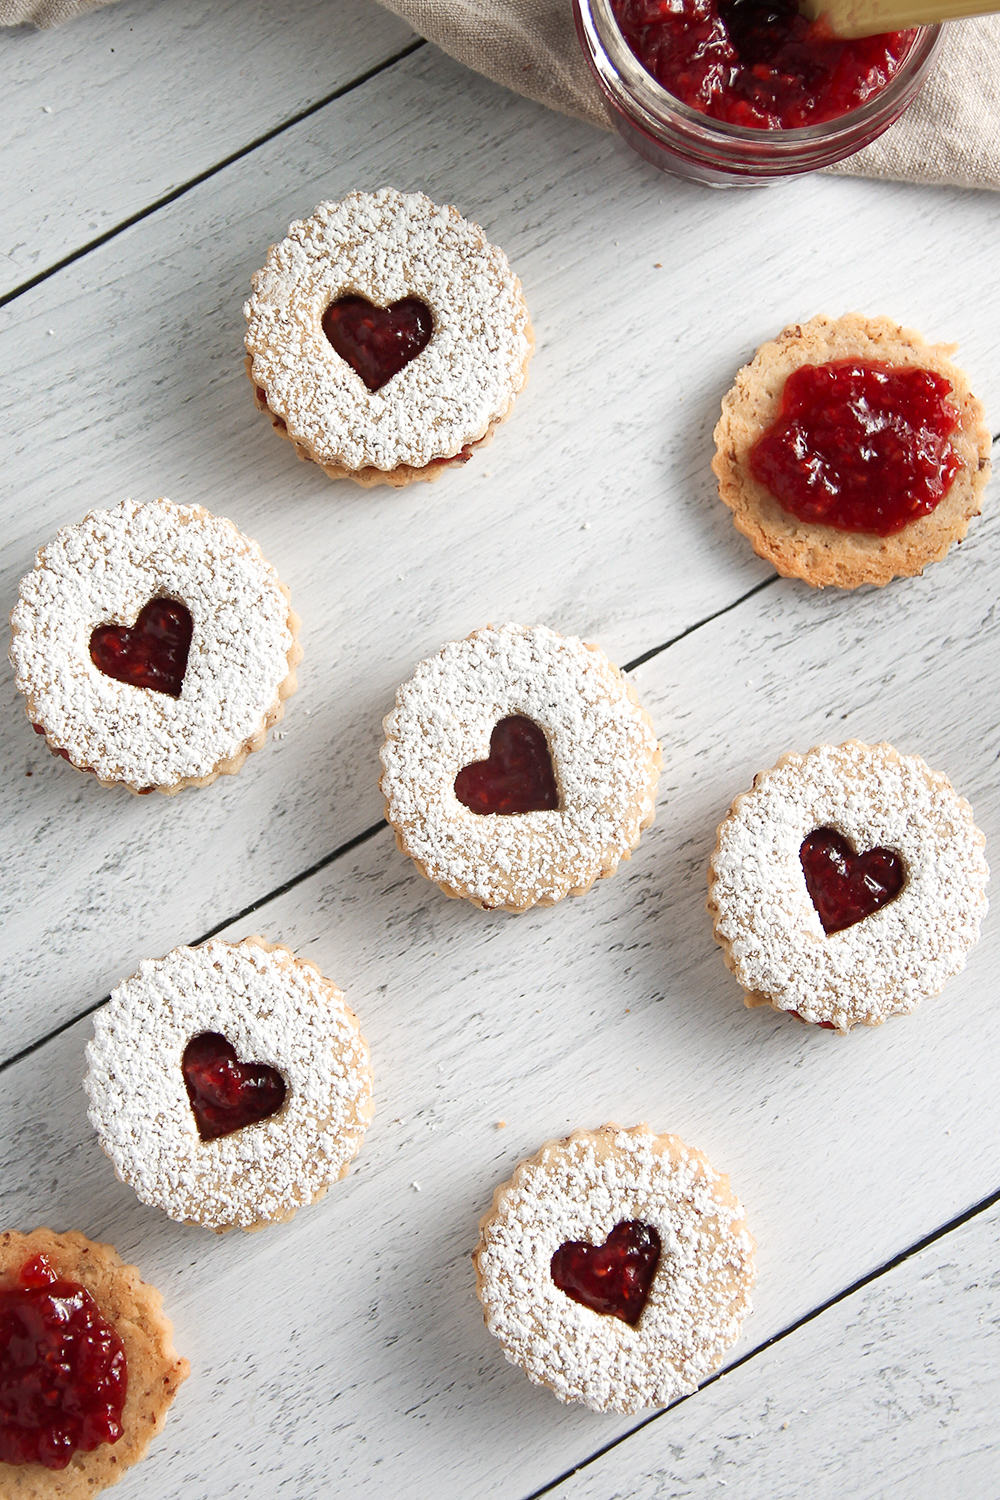 Tangy raspberry jam and nutty almonds come together to make sweet Raspberry Linzer Cookies.